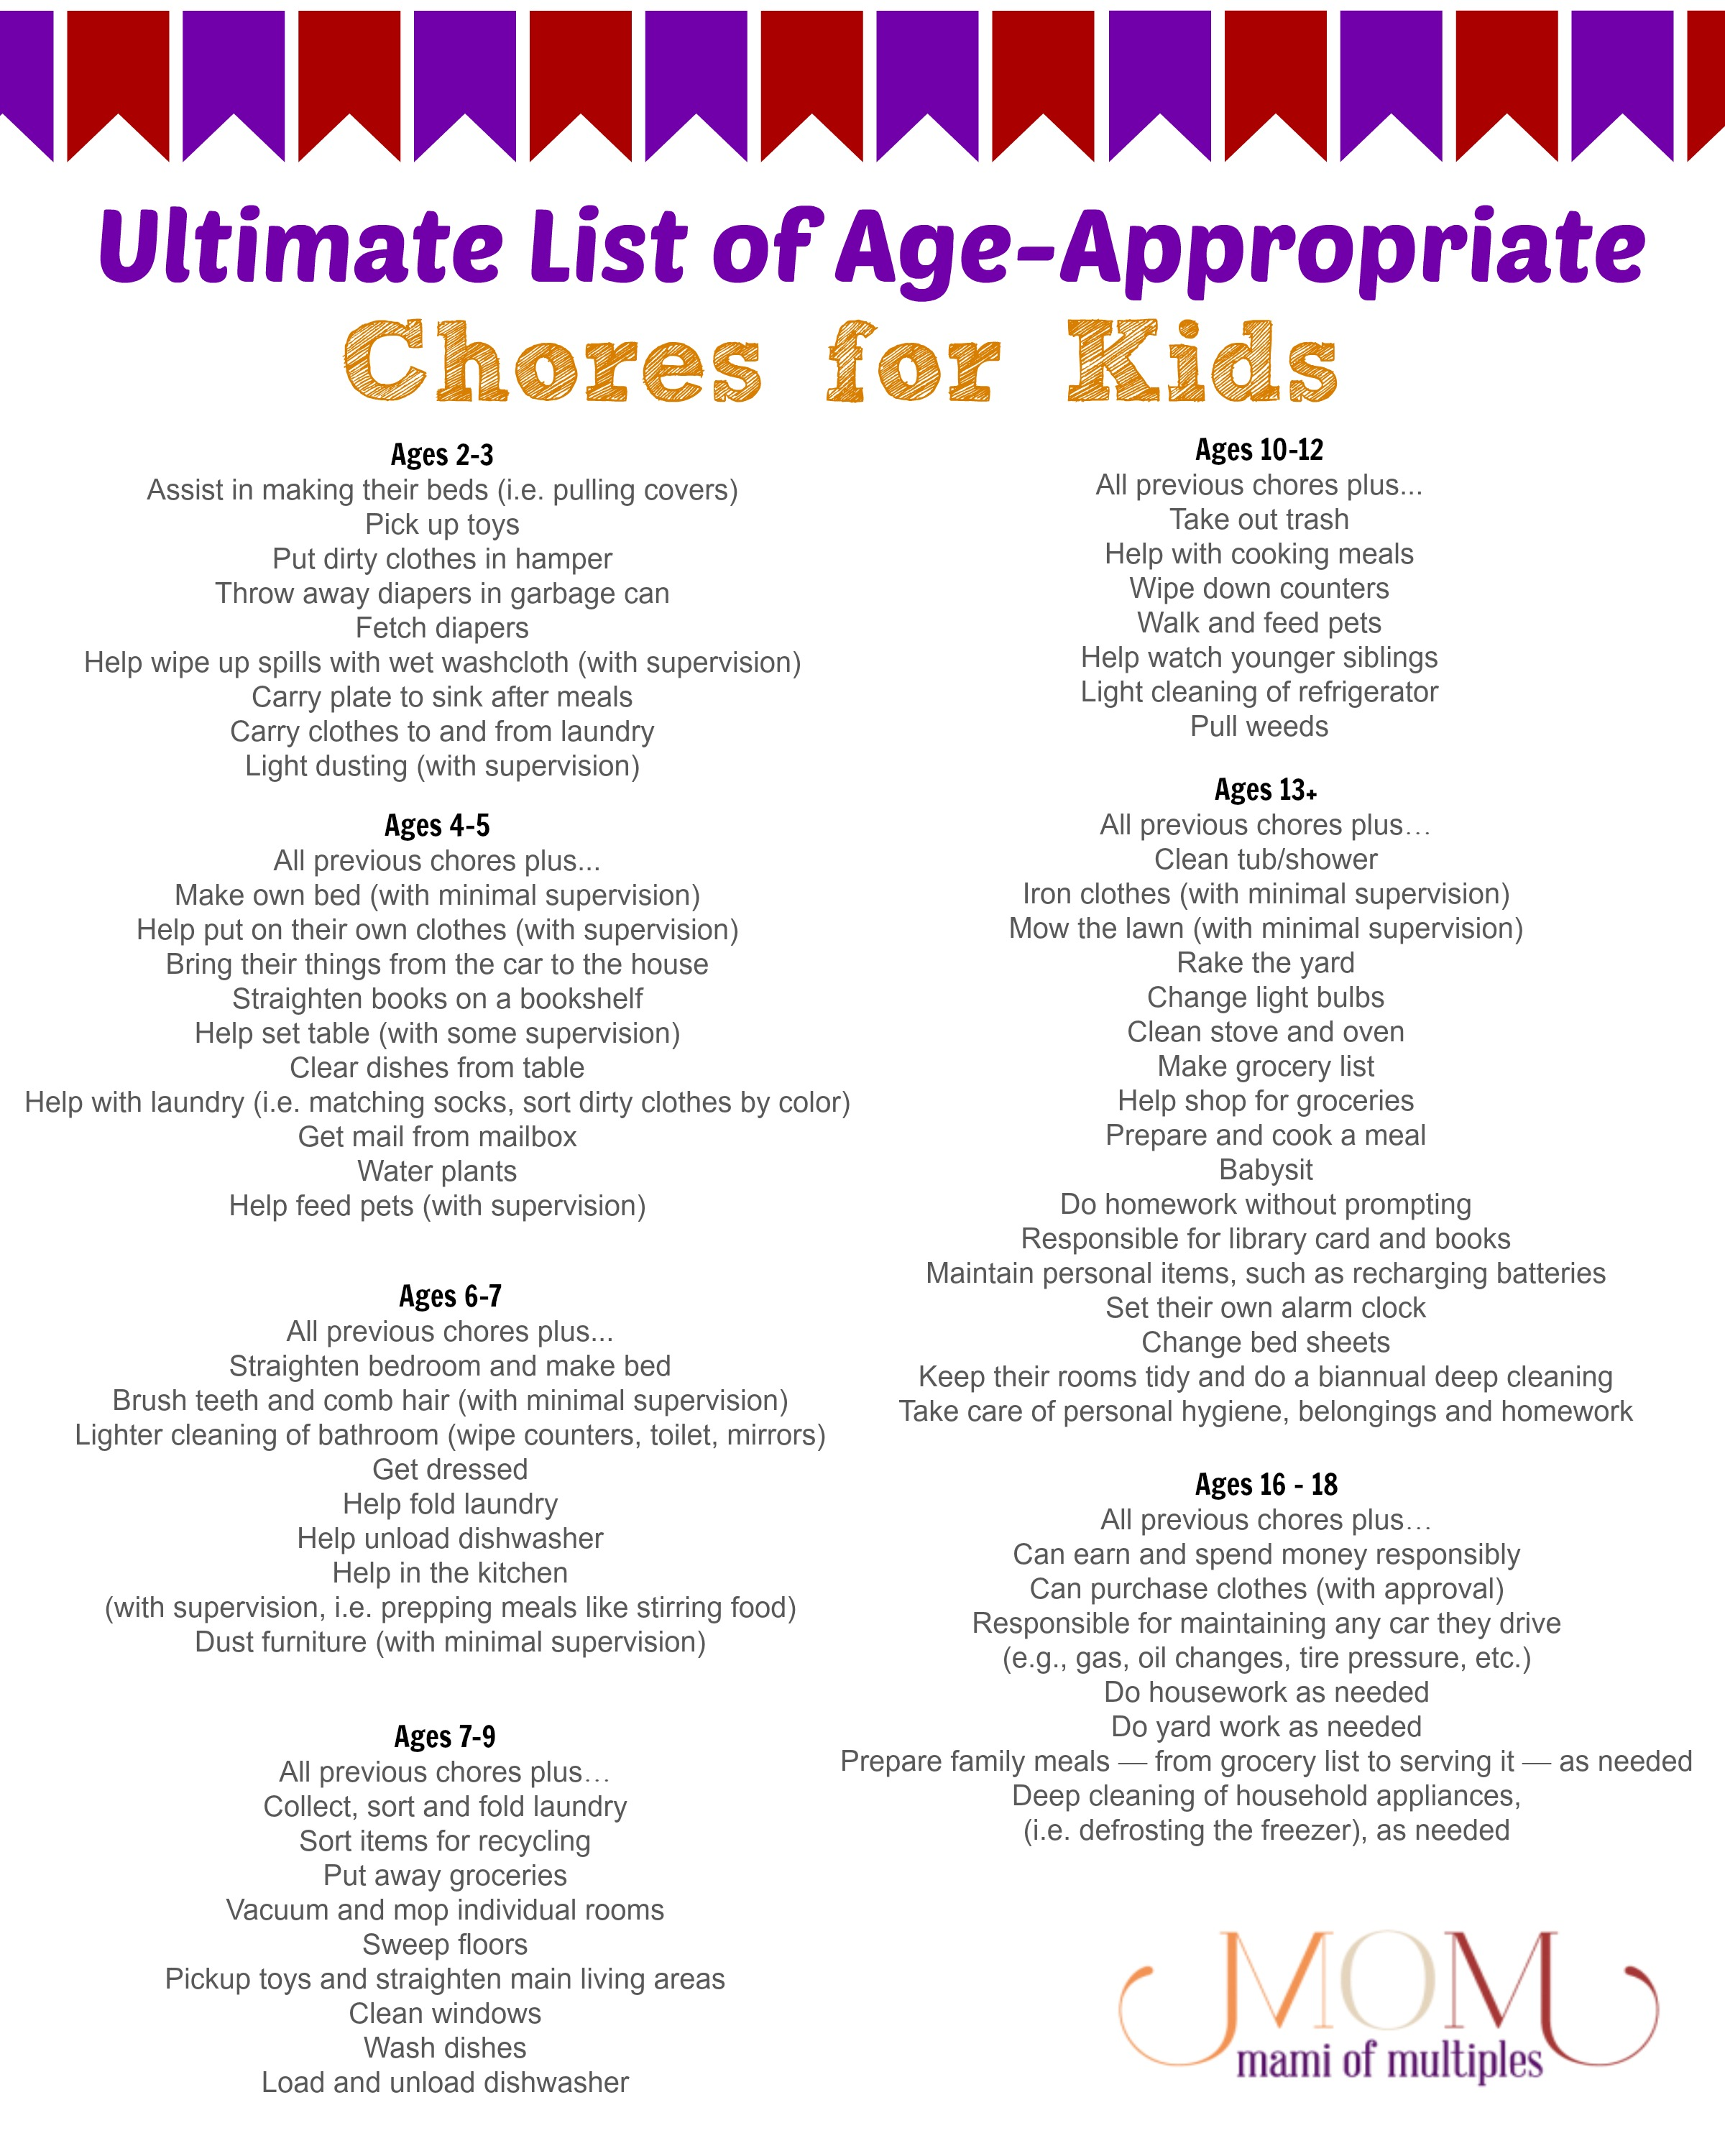 image about Printable Chore List known as Age-Relevant Chores for Youngsters and Printable Chore Charts